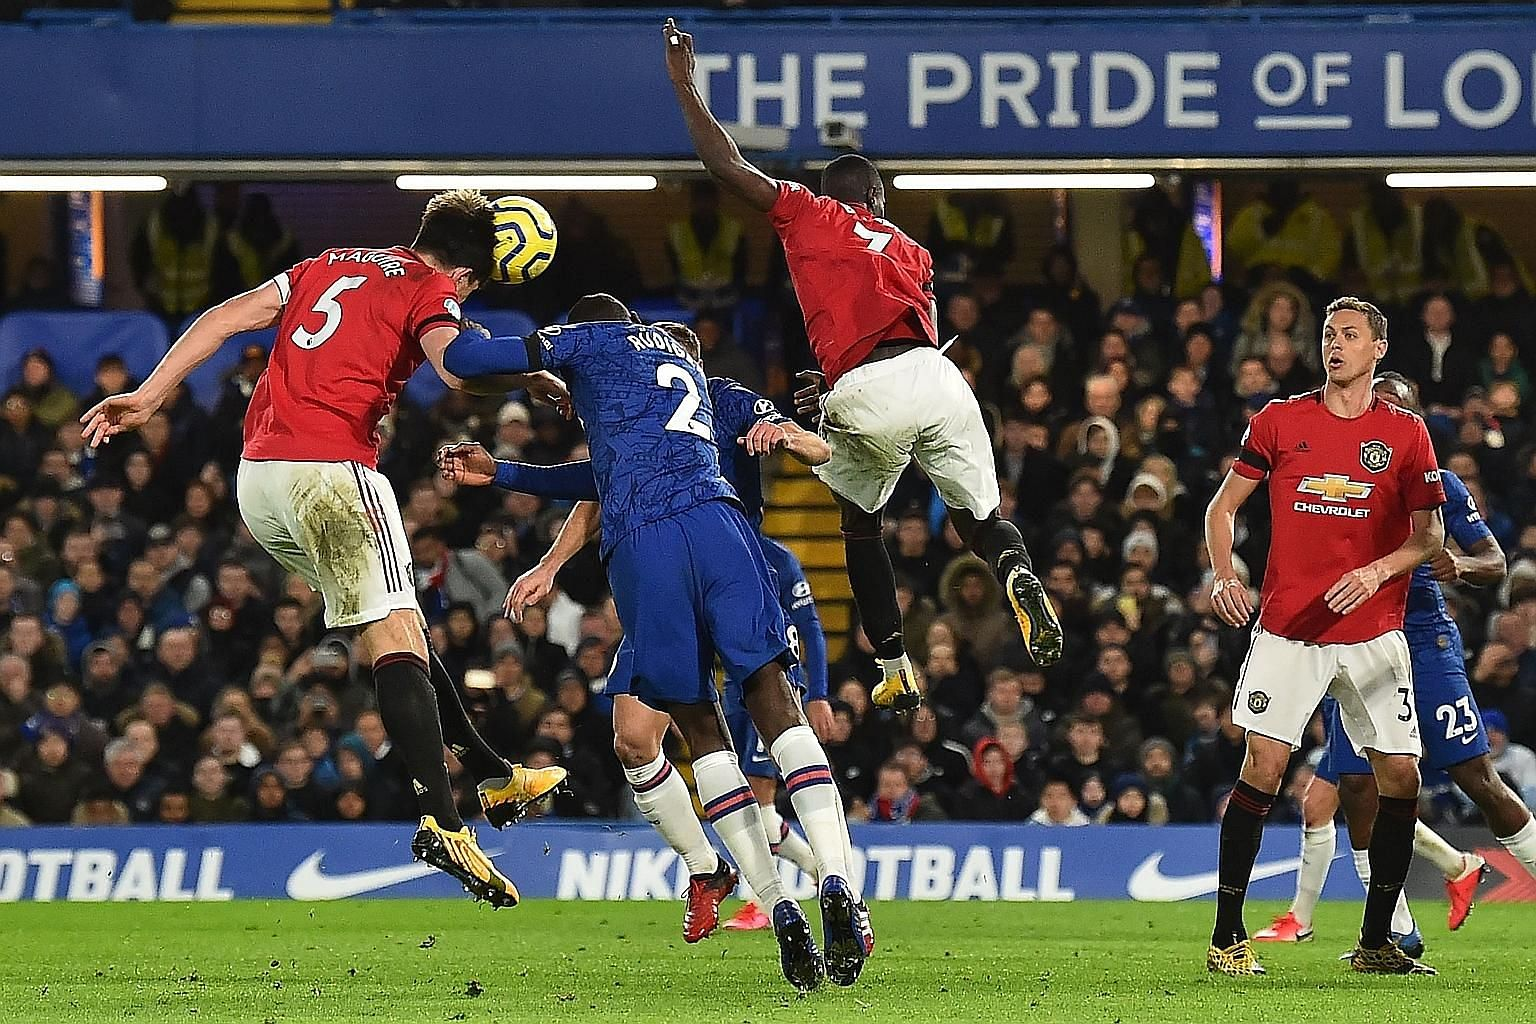 Harry Maguire (left) heading home Manchester United's second goal from a corner during their 2-0 win over Chelsea.